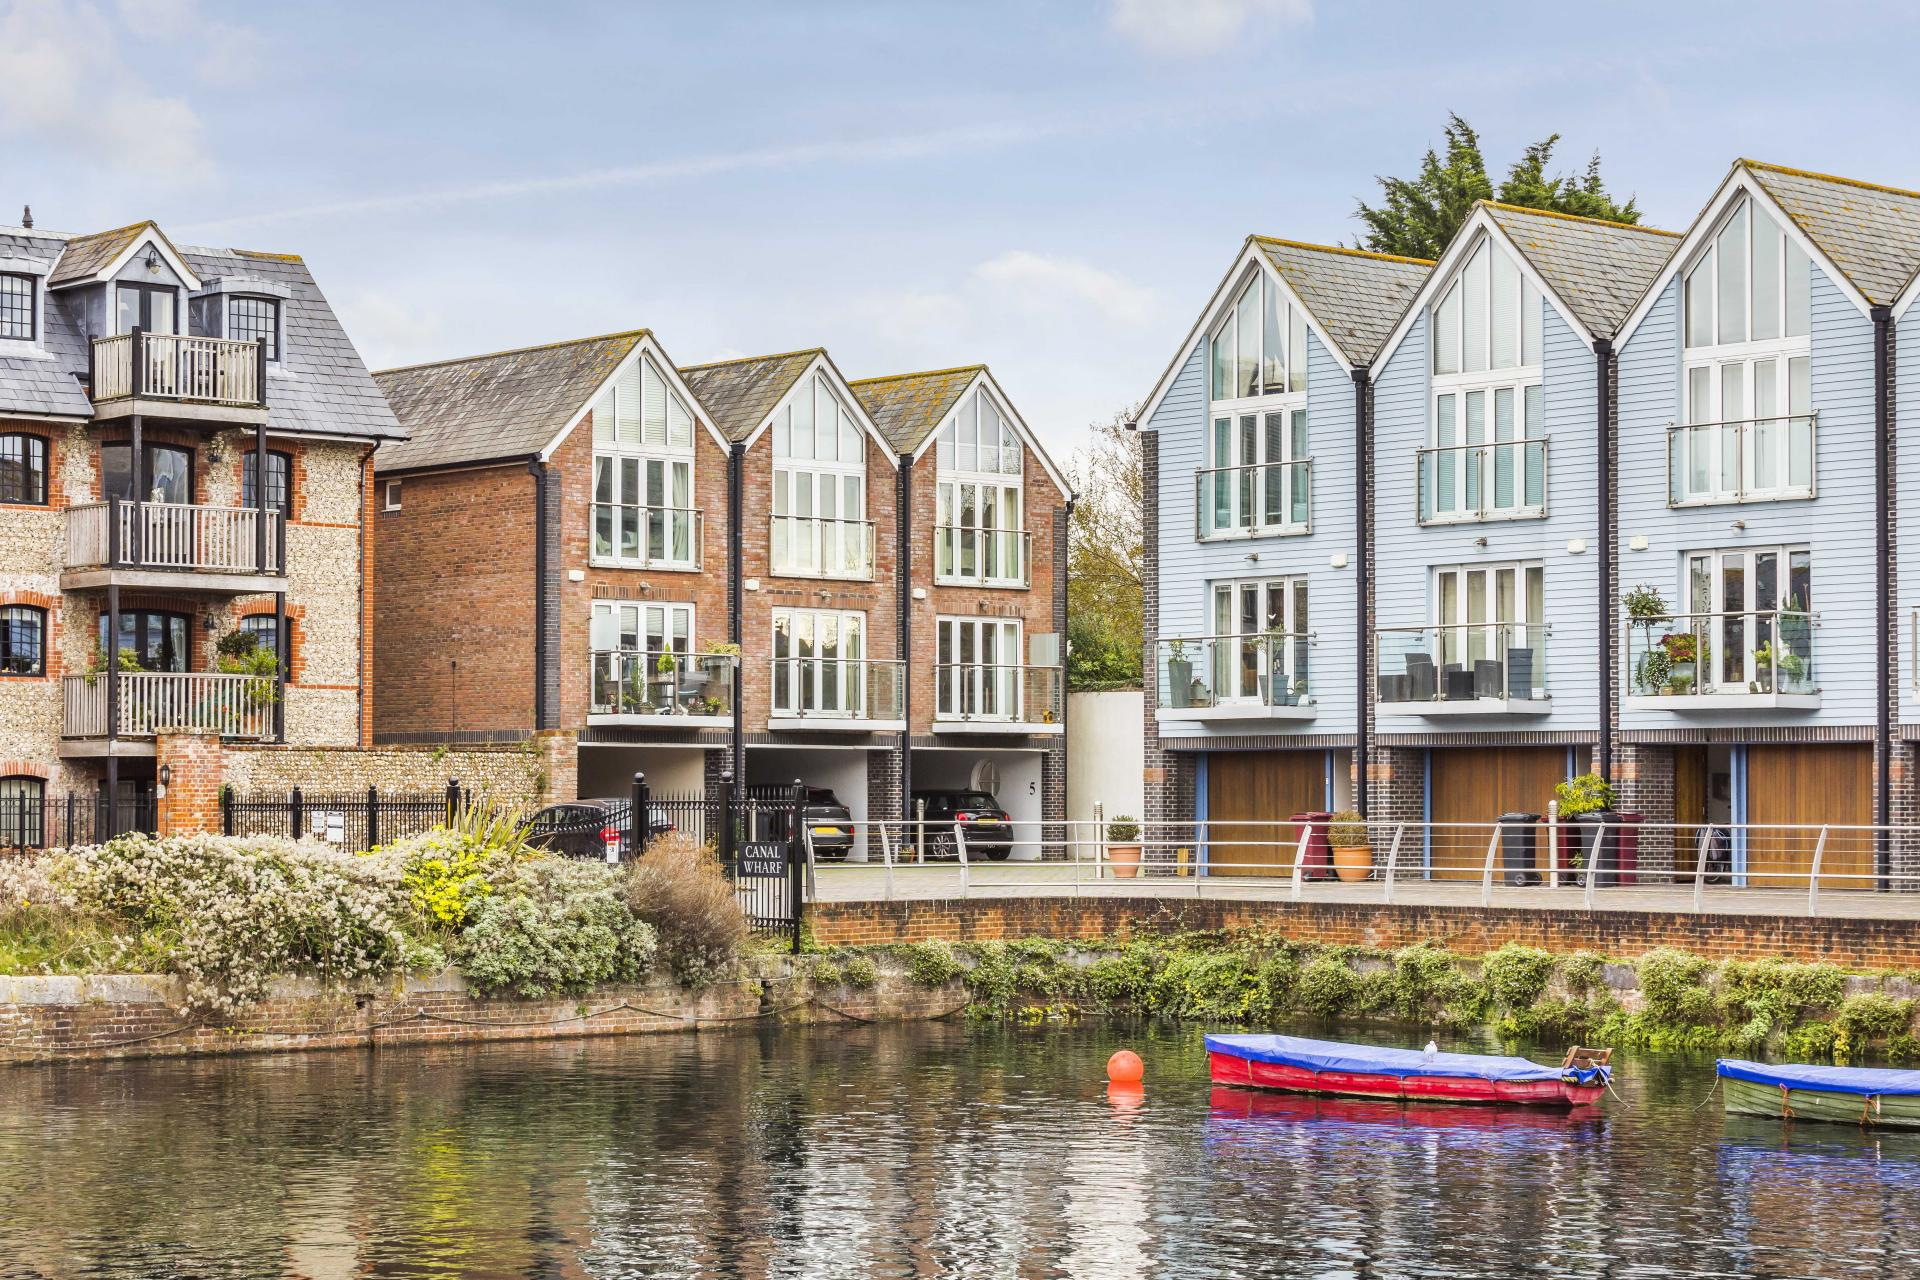 waterside 3 Bedroom End of Terrace House for sale in West Sussex